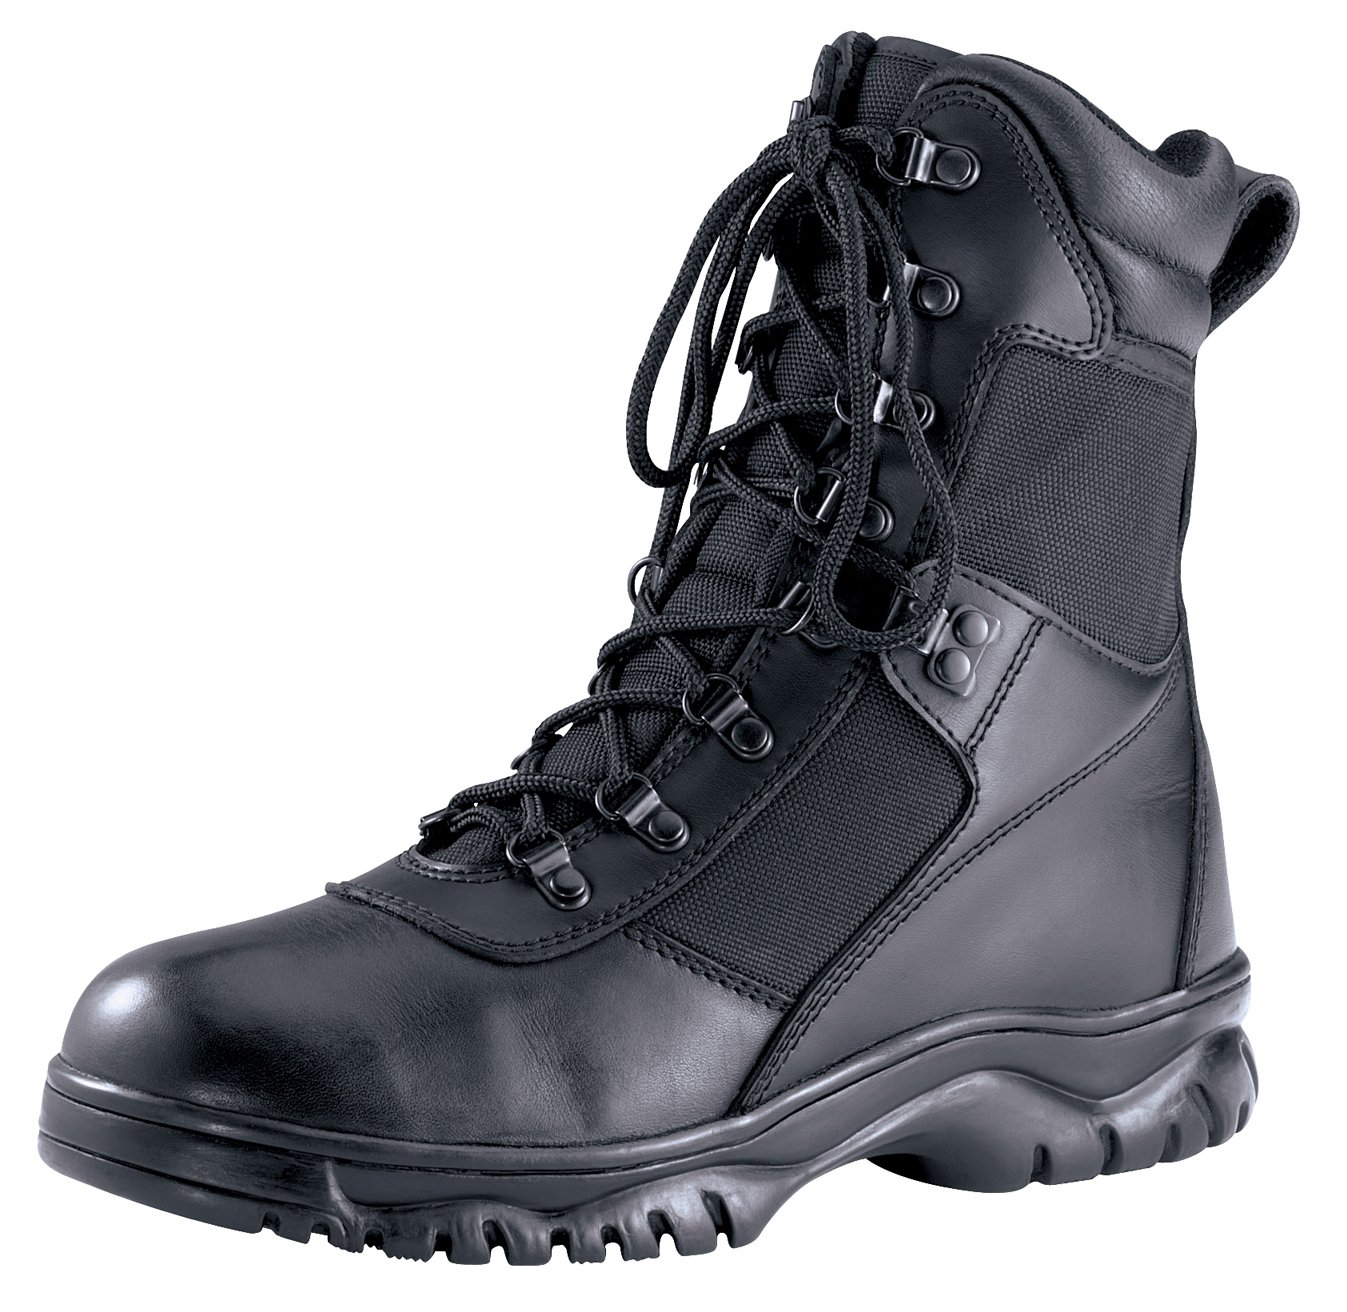 Rothco 8'' Forced Entry Tactical Boot, Black, 12 by Rothco (Image #1)